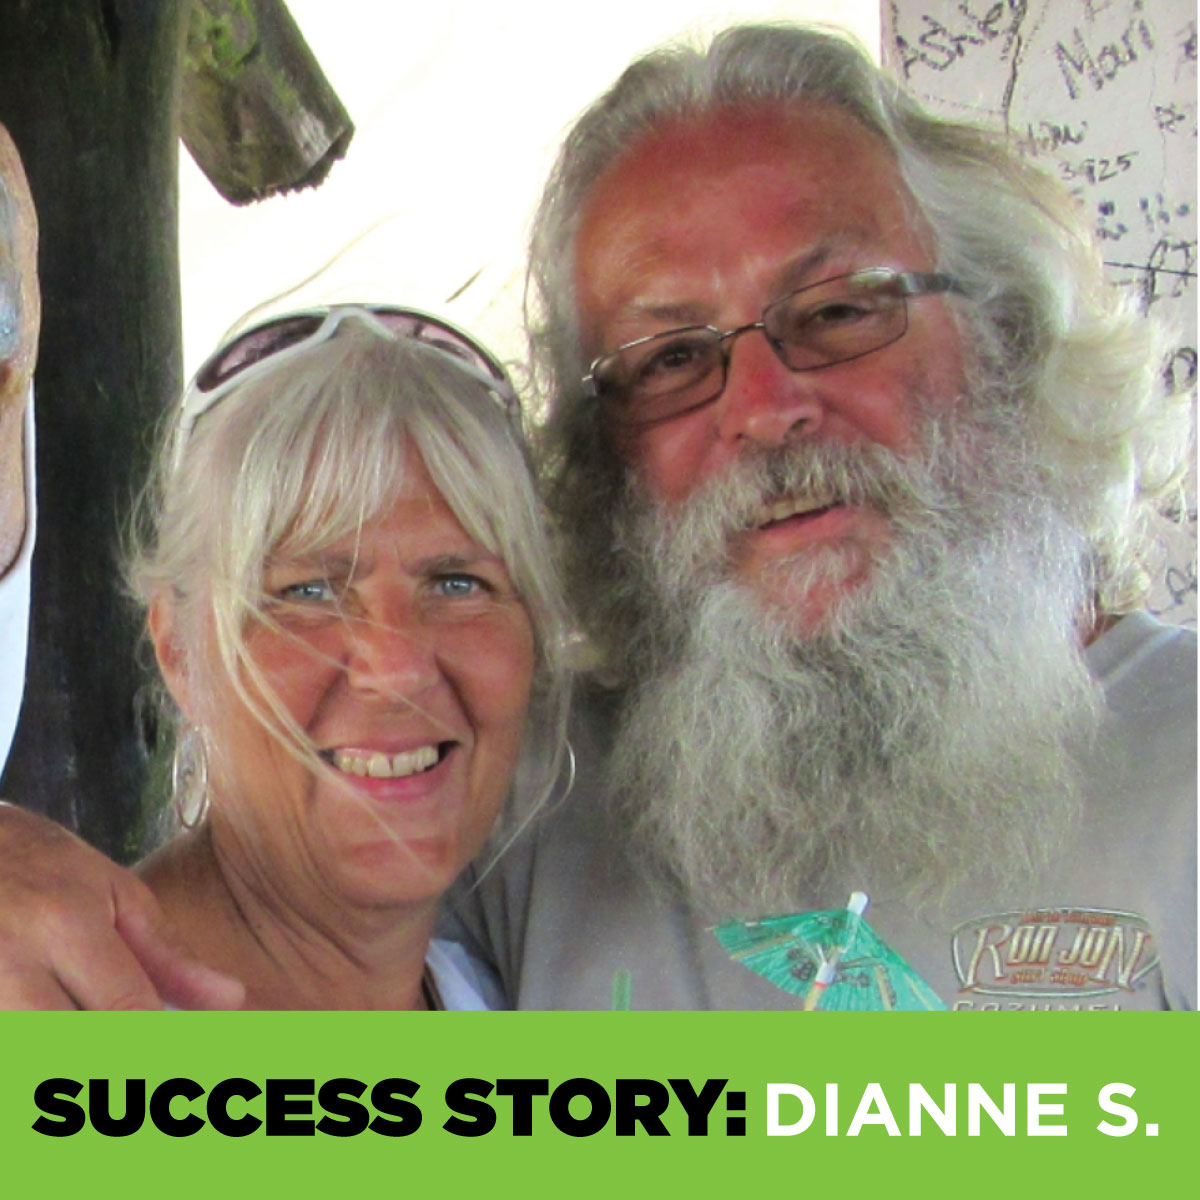 Life After Retirement - Dianne and Mark